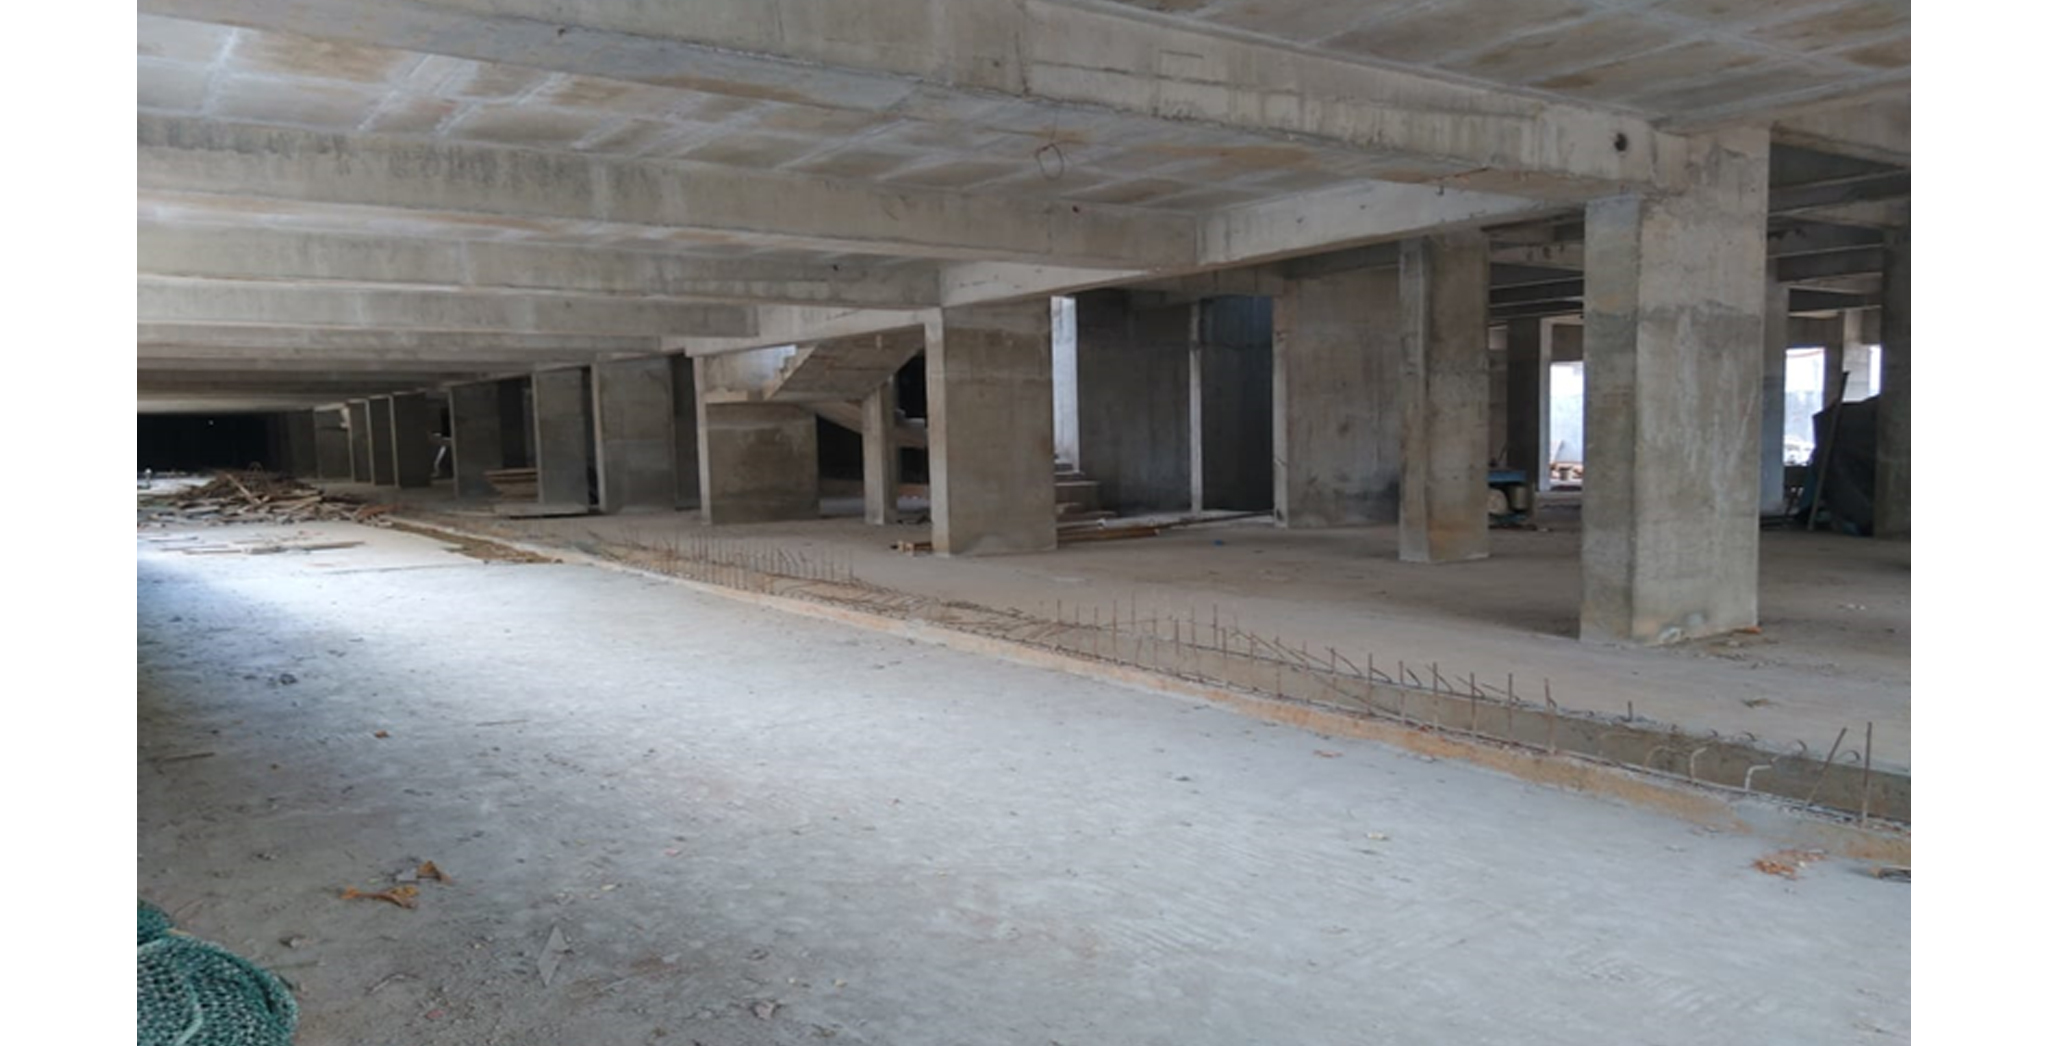 Aug 2021 - Basement civil work completed